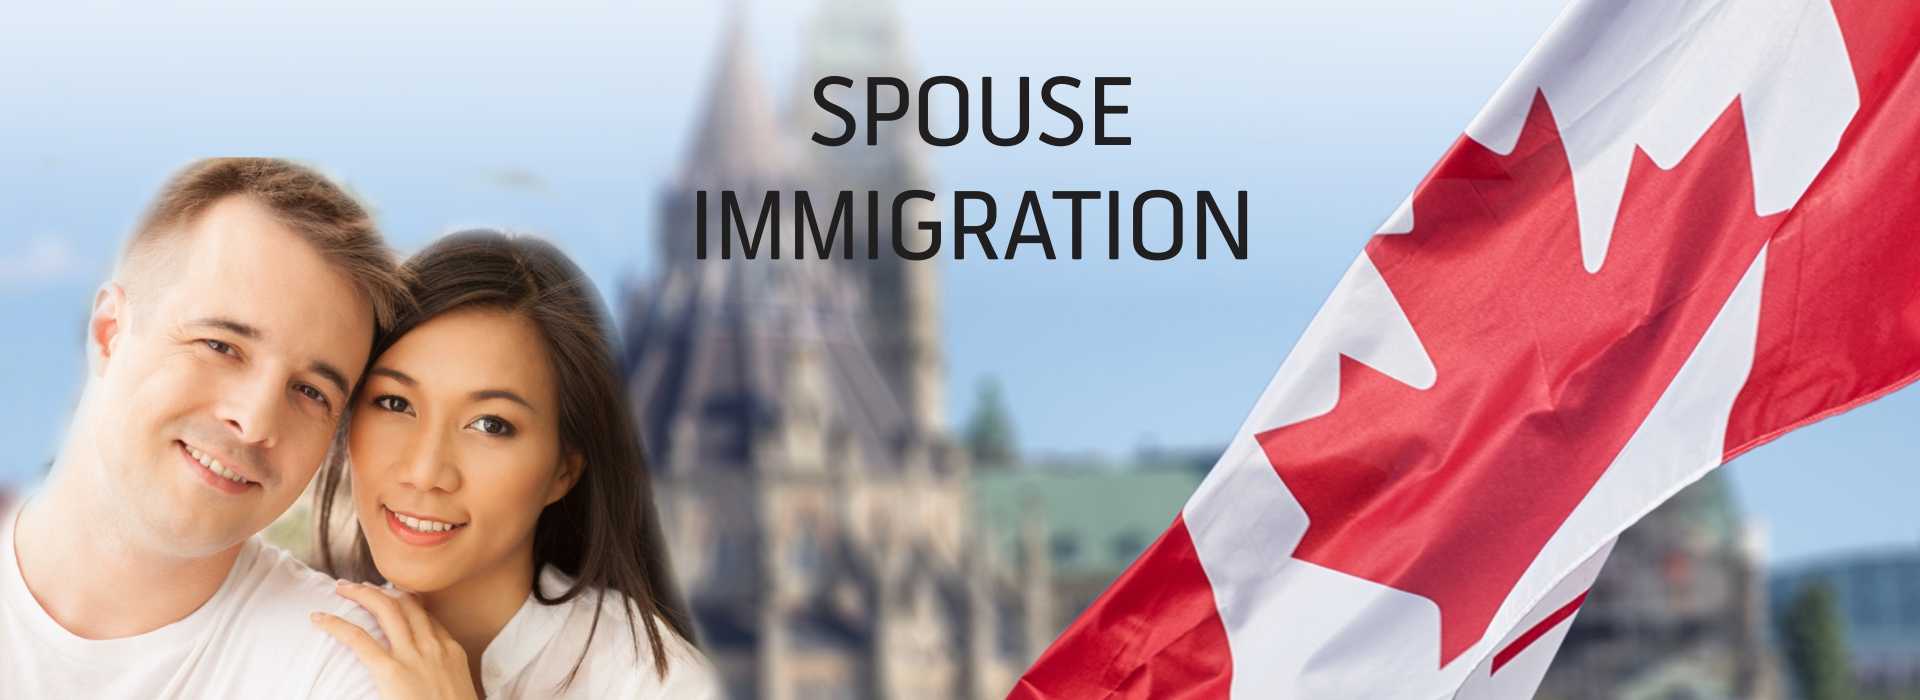 Reasons for refusal of spousal visa to Canada